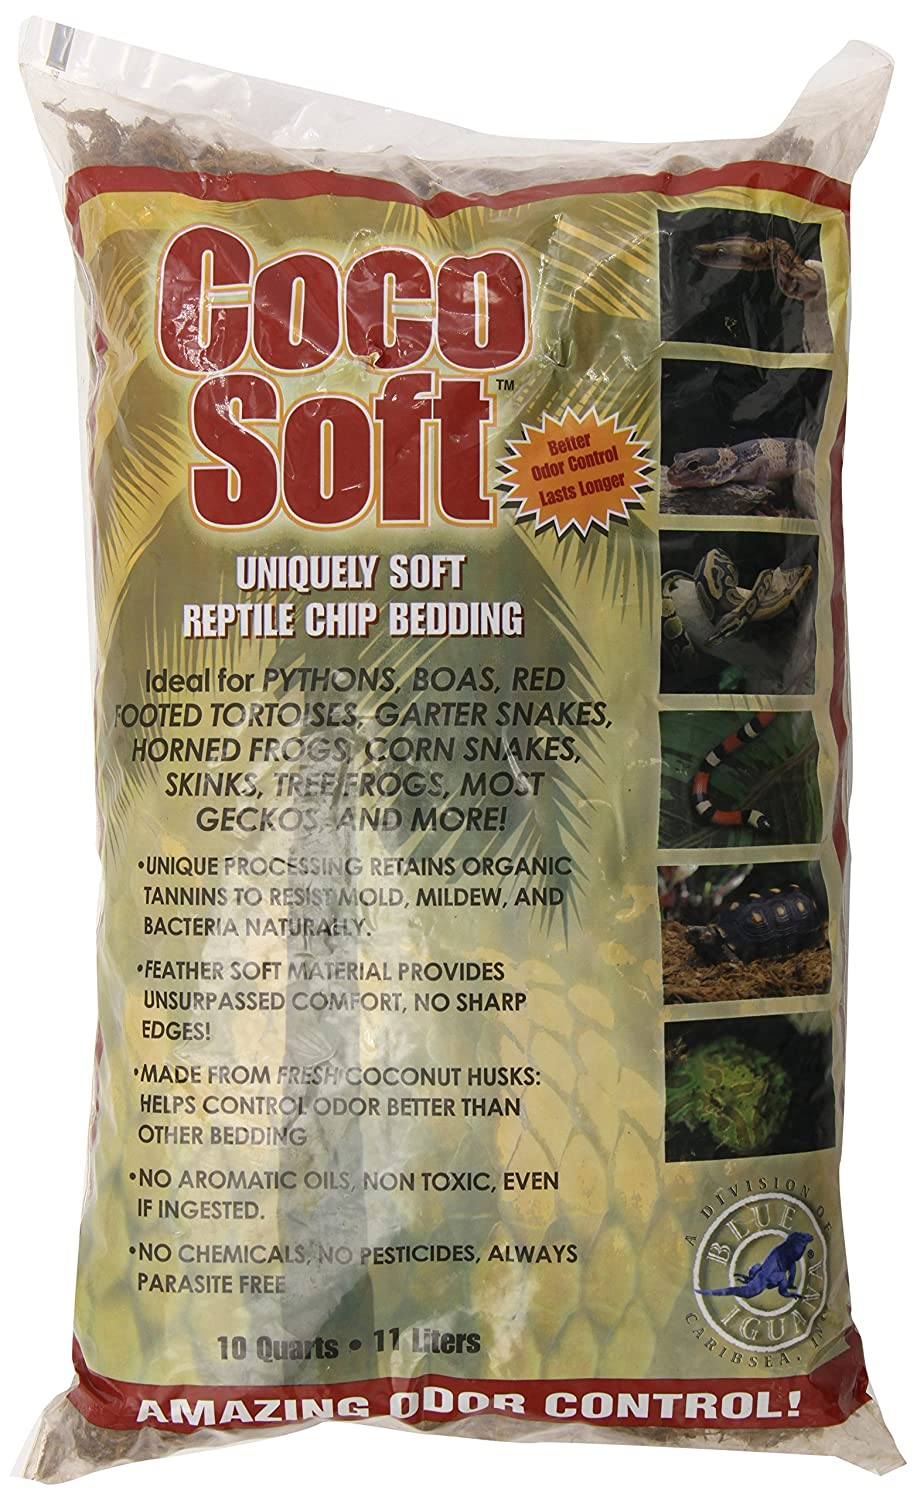 Carib Sea SCS00211 Coco Soft Reptiles Bedding, Coarse Chip, 10-Quart